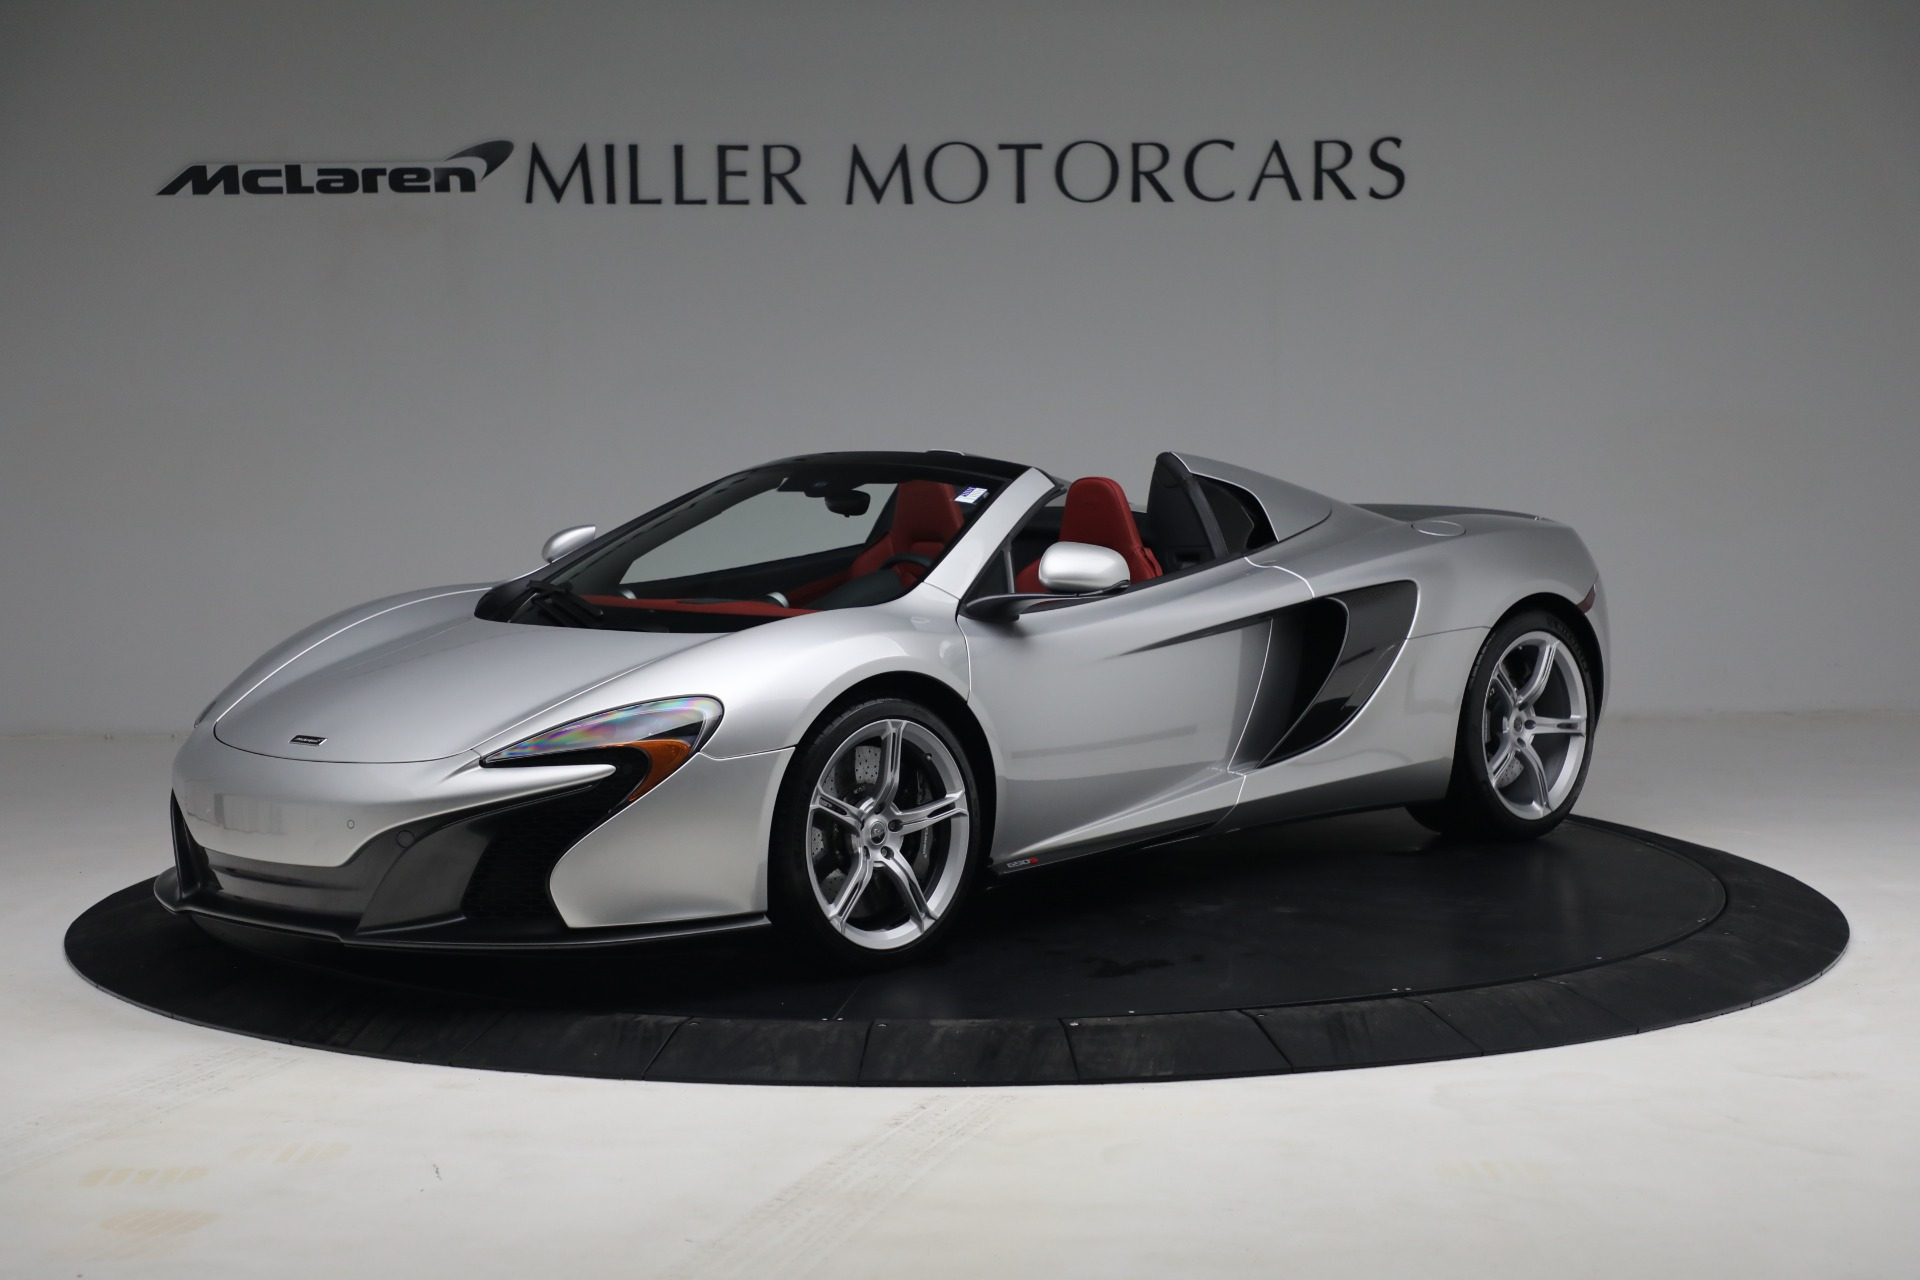 Used 2015 McLaren 650S Spider for sale $179,990 at Rolls-Royce Motor Cars Greenwich in Greenwich CT 06830 1